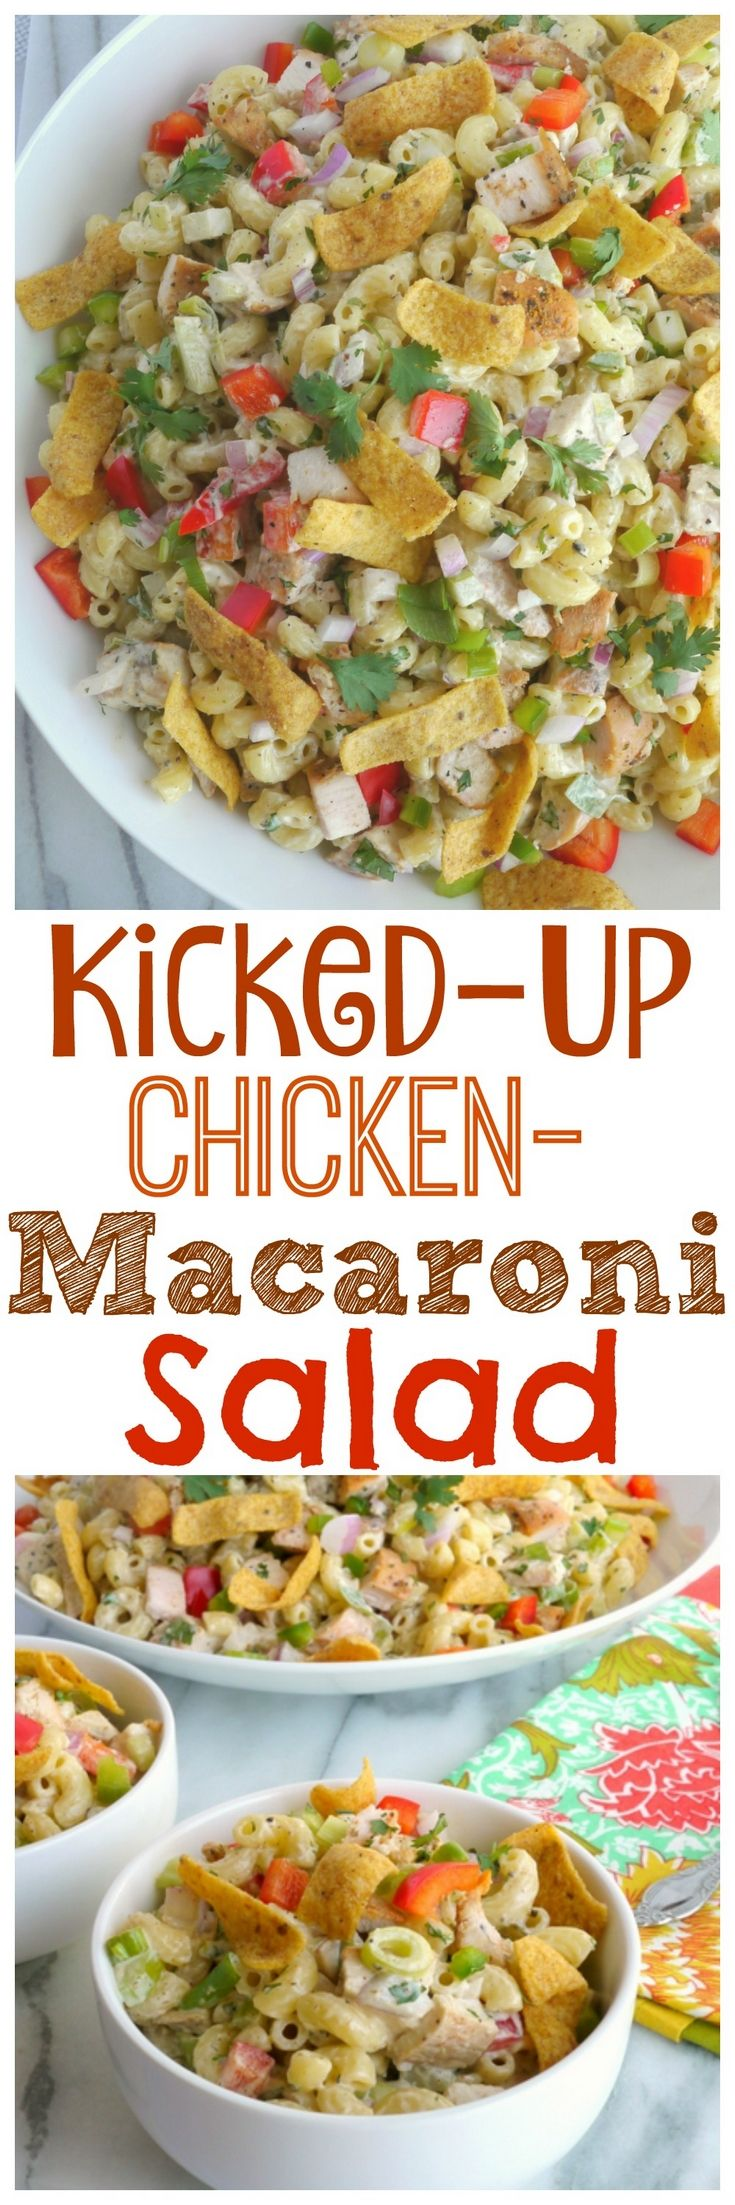 This Kicked-Up Chicken-Macaroni Salad recipe will…